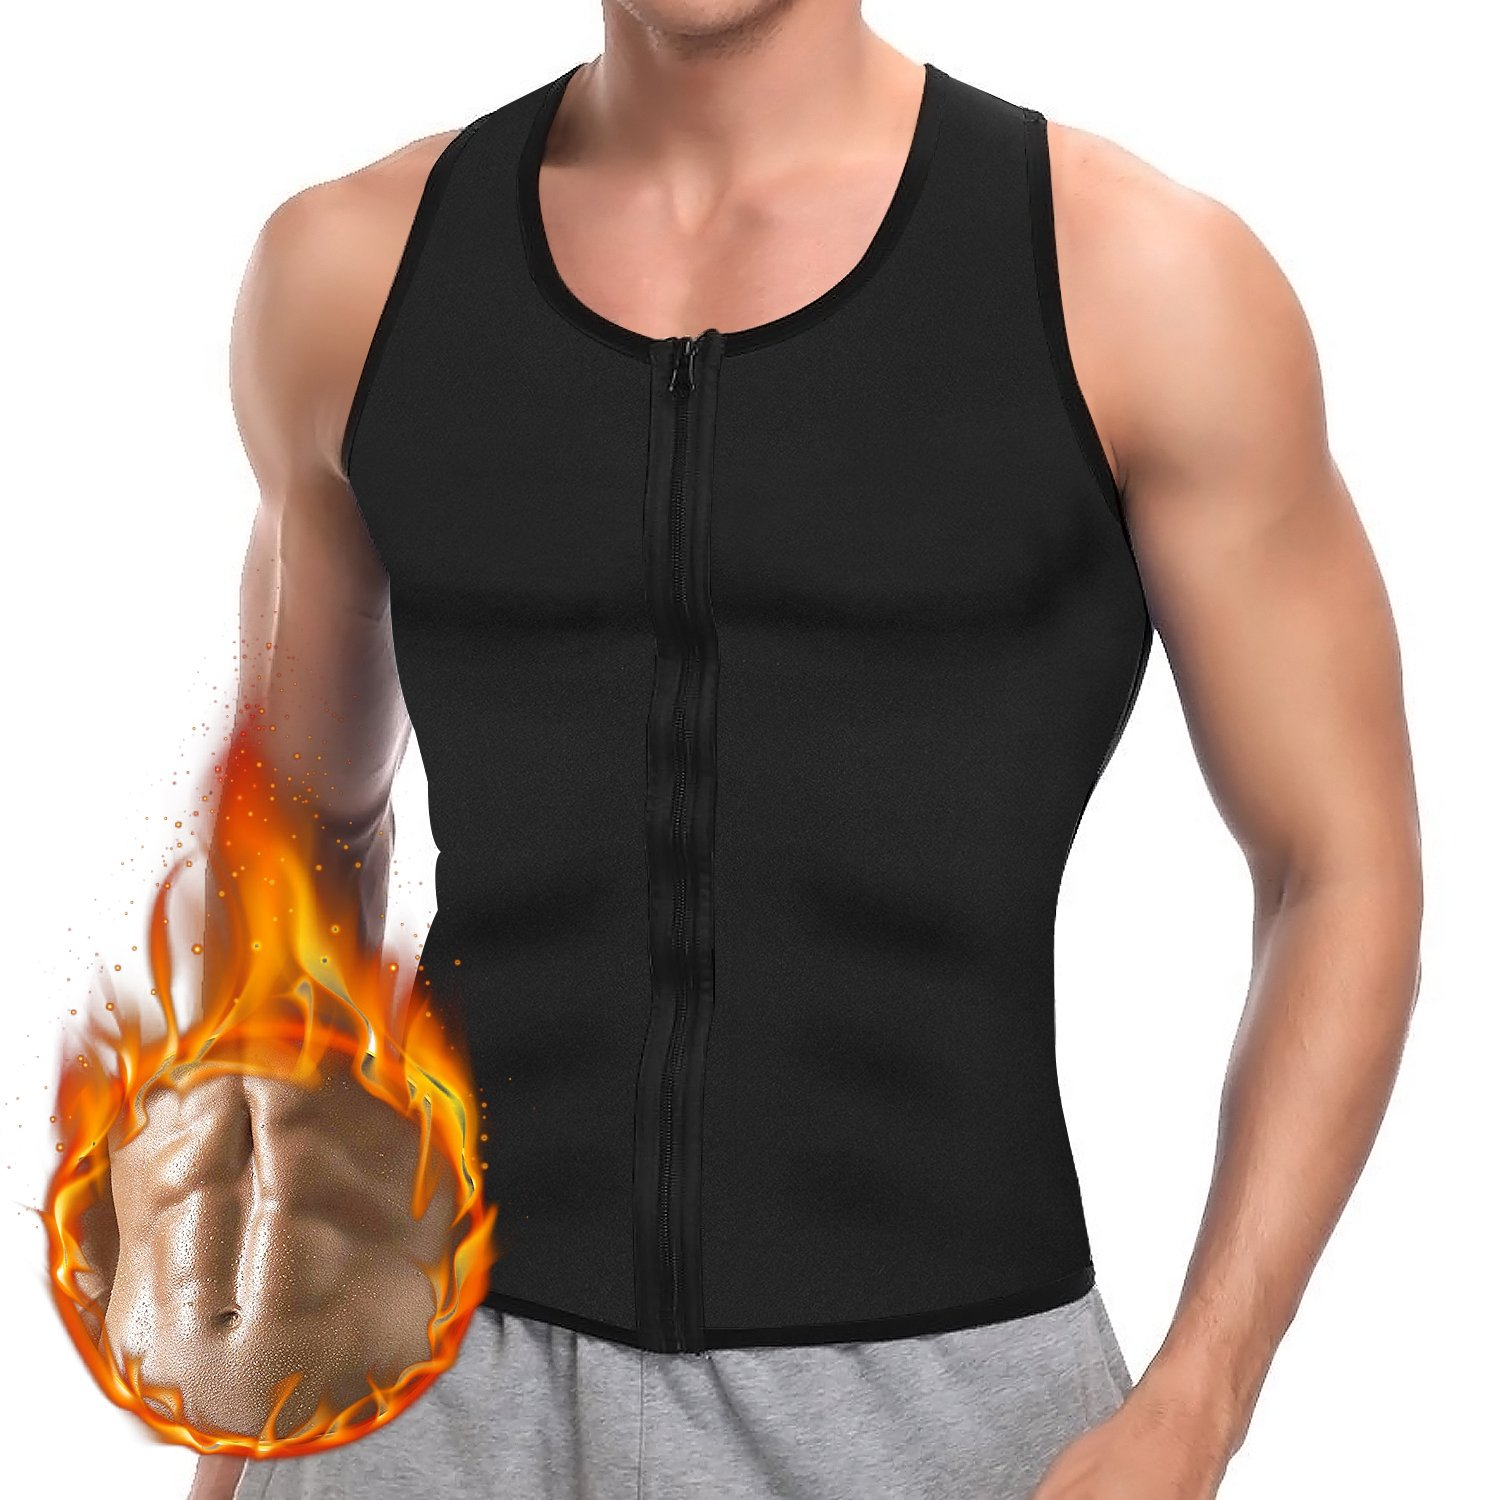 142024e7268 ✓NEW RELEASE  This Neoprene Waist Trainer is designed to accelerate and  maximize fat-loss and muscle toning to reach faster the targeted shape and  weight ...